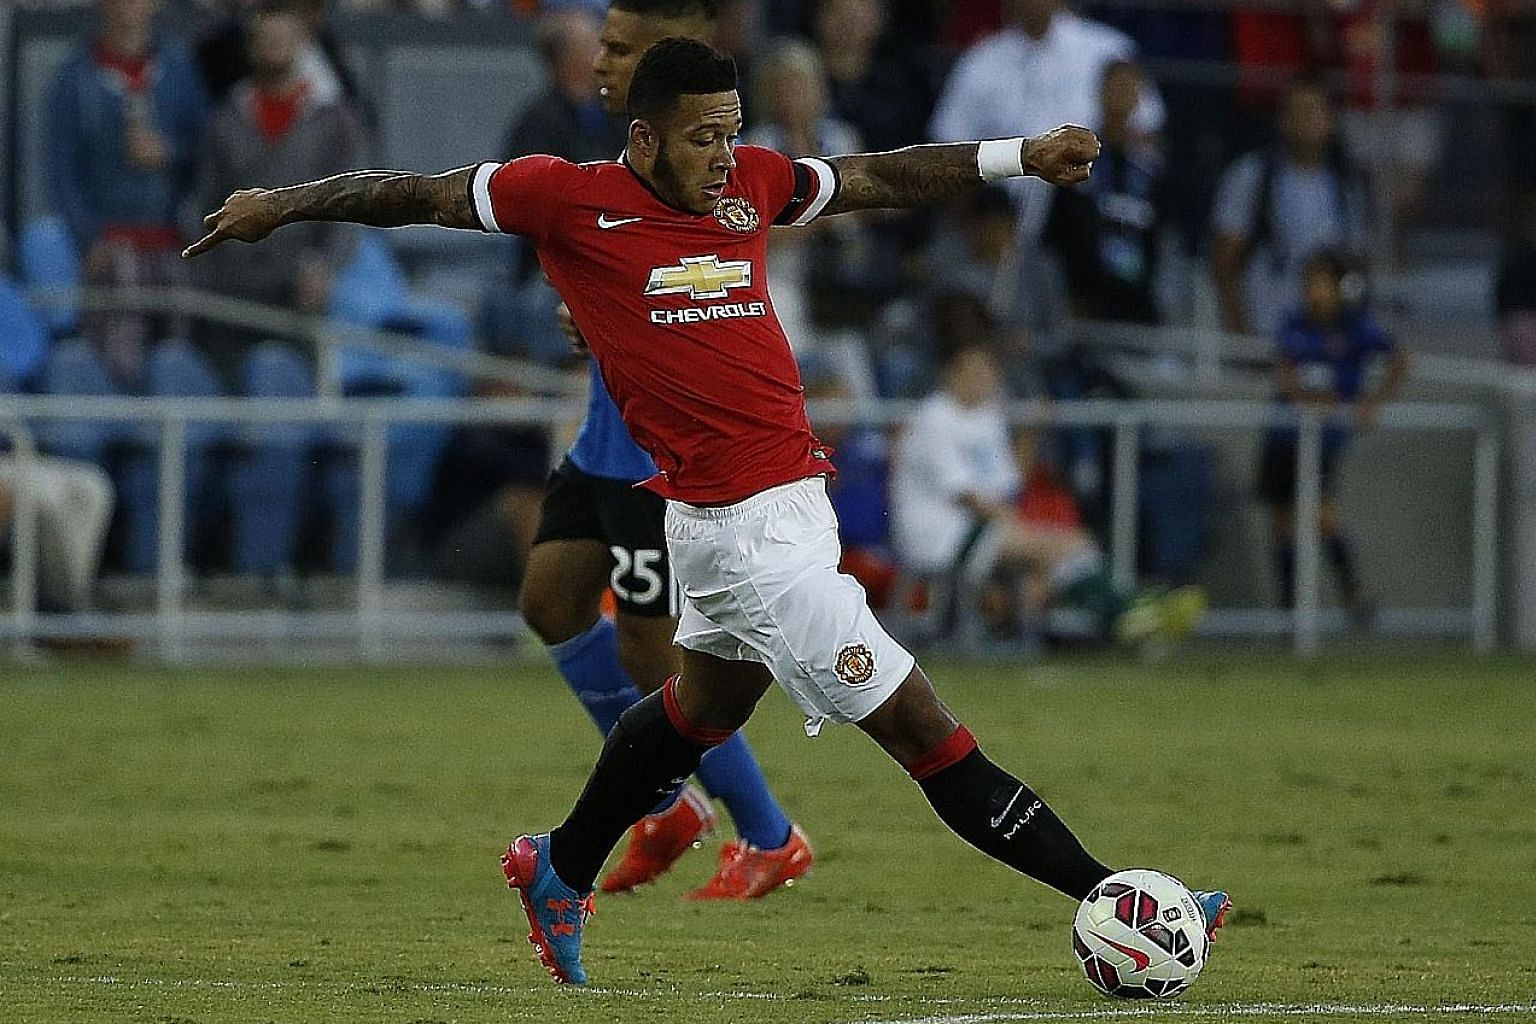 Memphis Depay displaying poise and control during the first half of Manchester United's 3-1 victory against the San Jose Earthquakes at Avaya Stadium, California on Tuesday. Depay, who moved to Old Trafford last month, took only four minutes to open